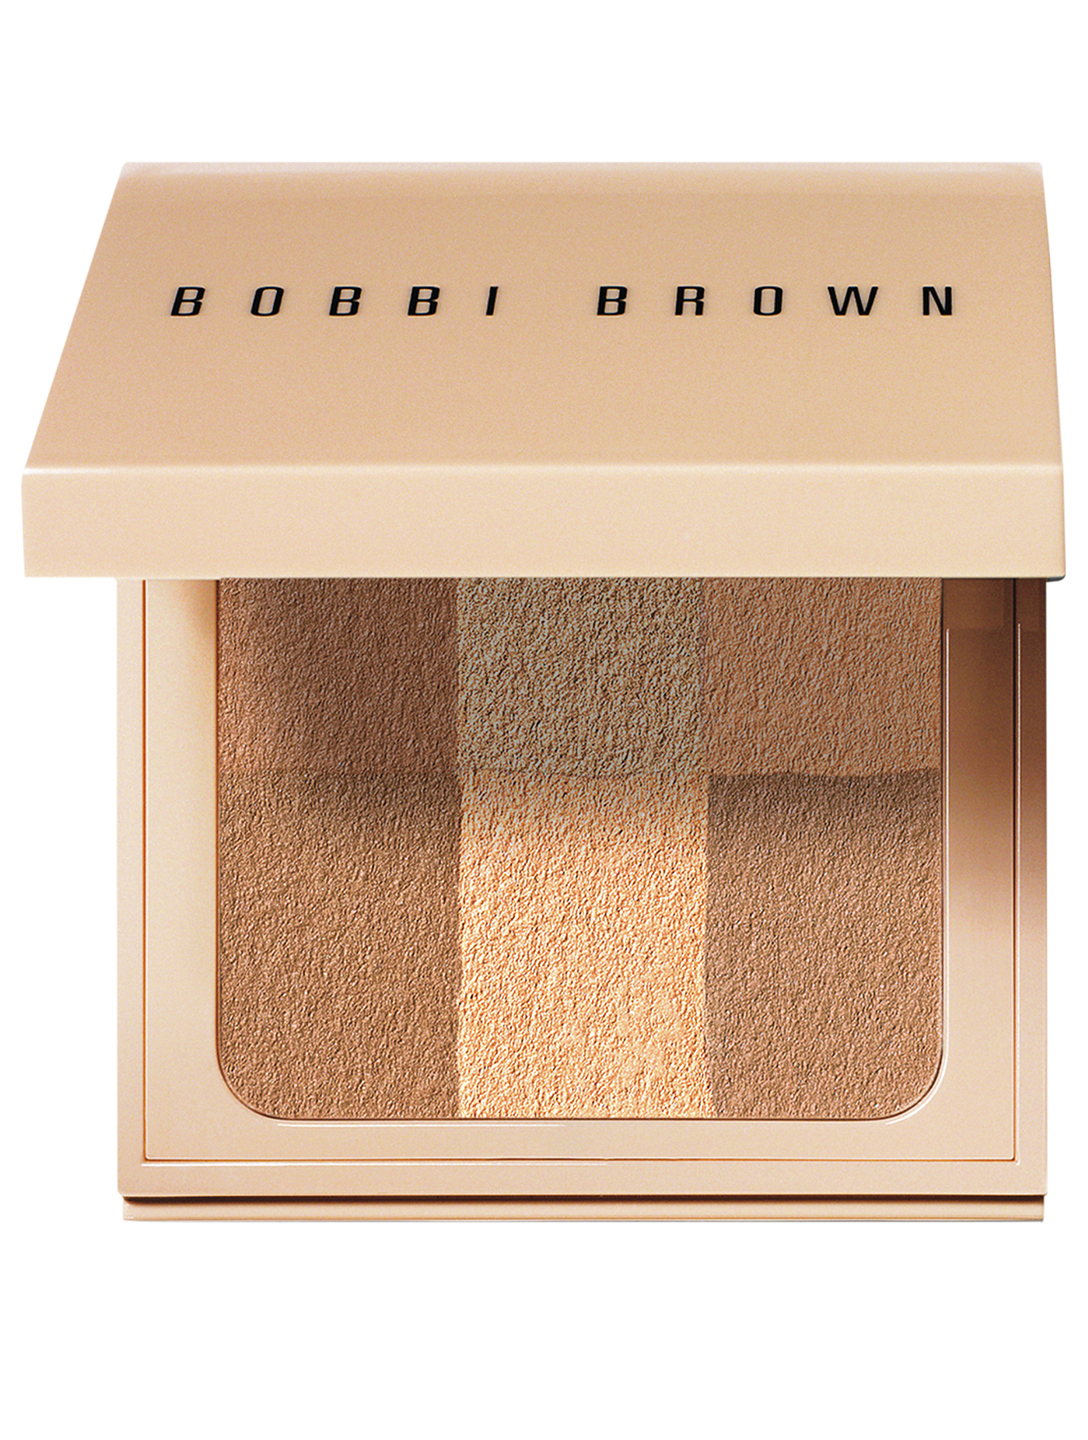 BOBBI BROWN Nude Finish Illuminating Powder Beauty Neutral